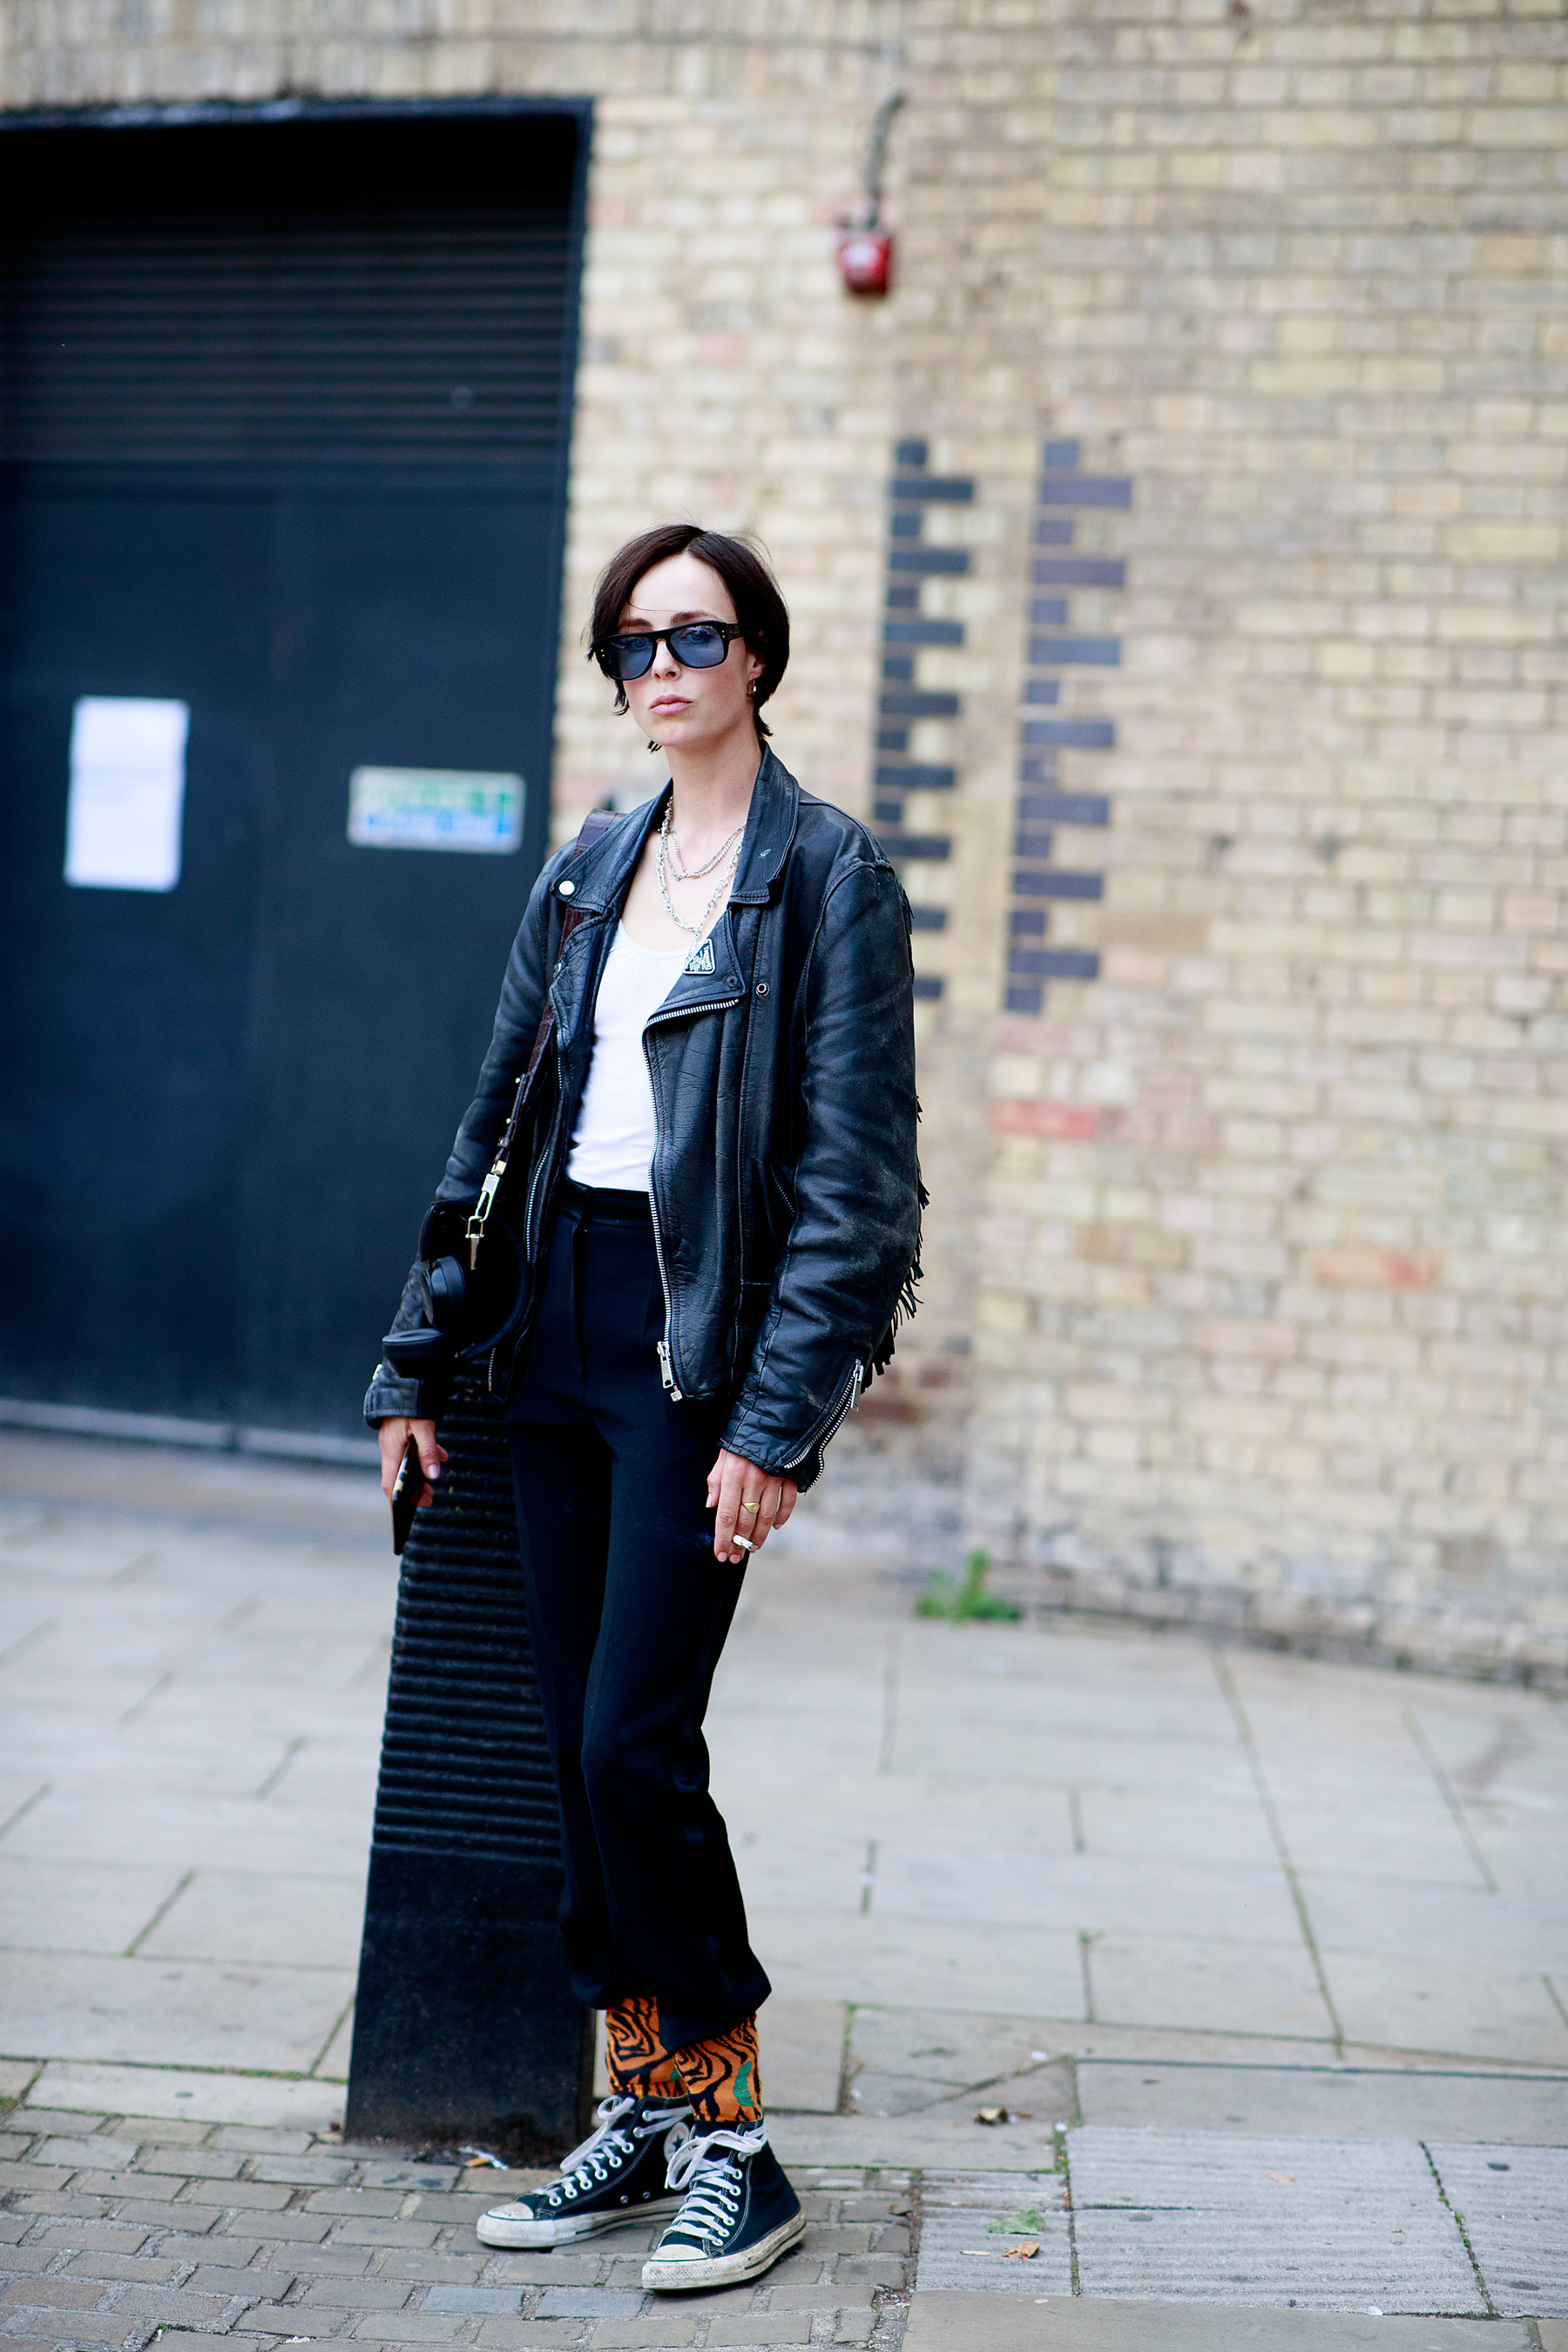 London Street Style Spring 2022 Day 5